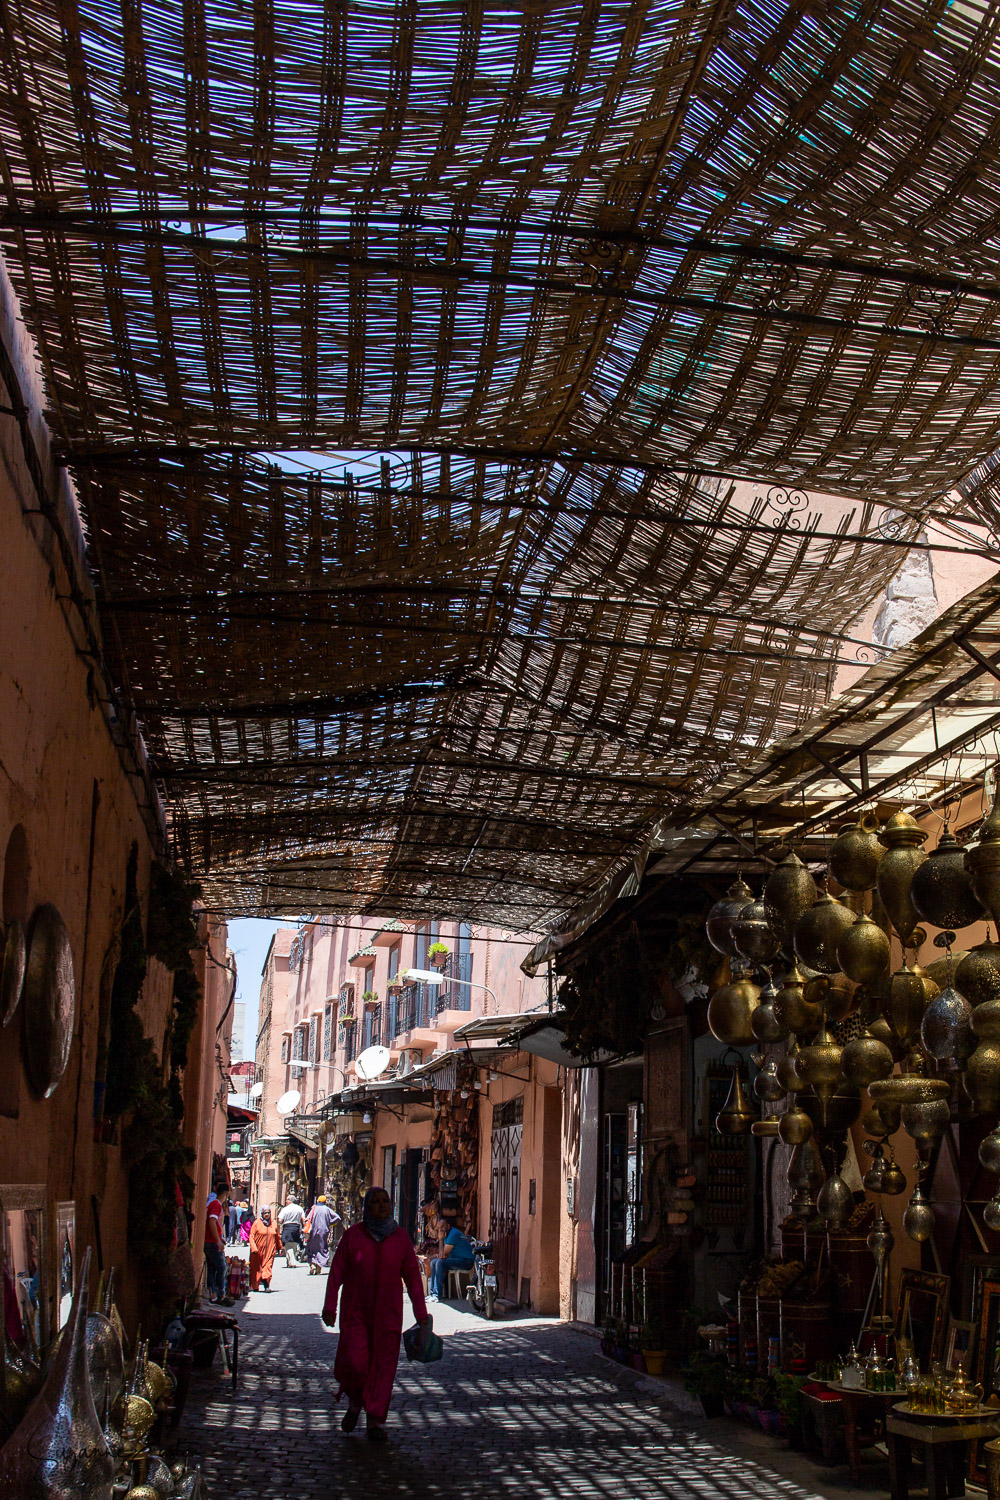 A non-descript alleyway with lanterns hanging from the rattan covers